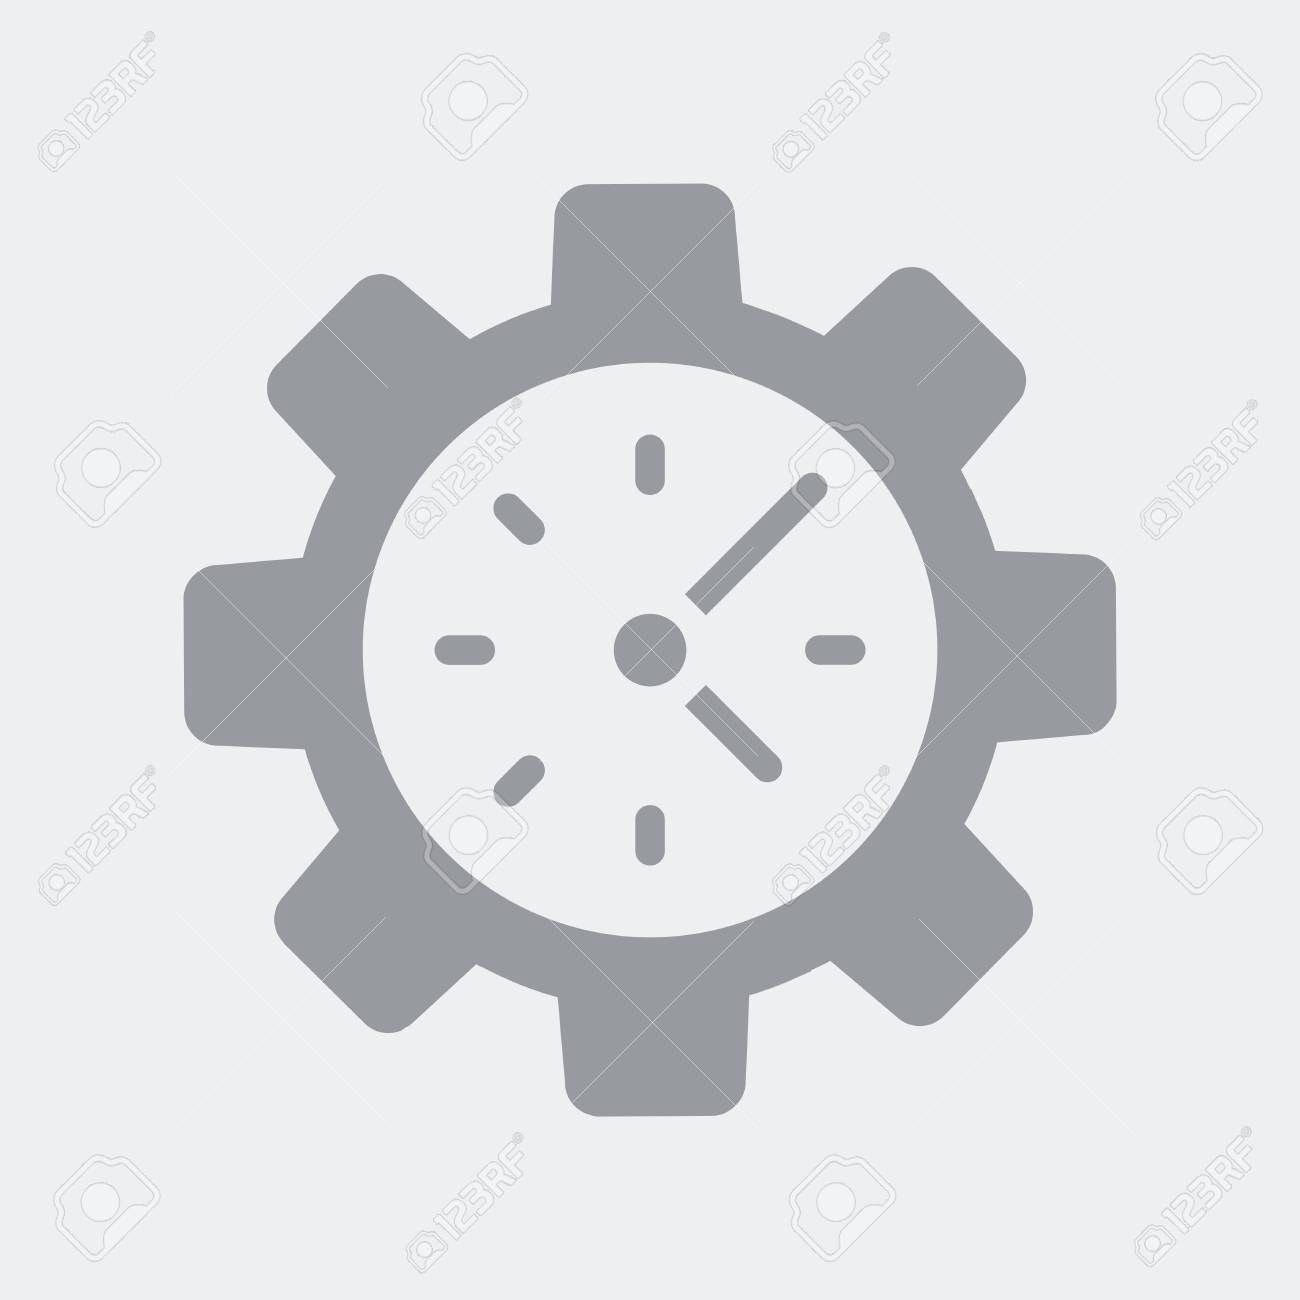 Flat and isolated vector illustration icon with minimal and modern design - 111885331